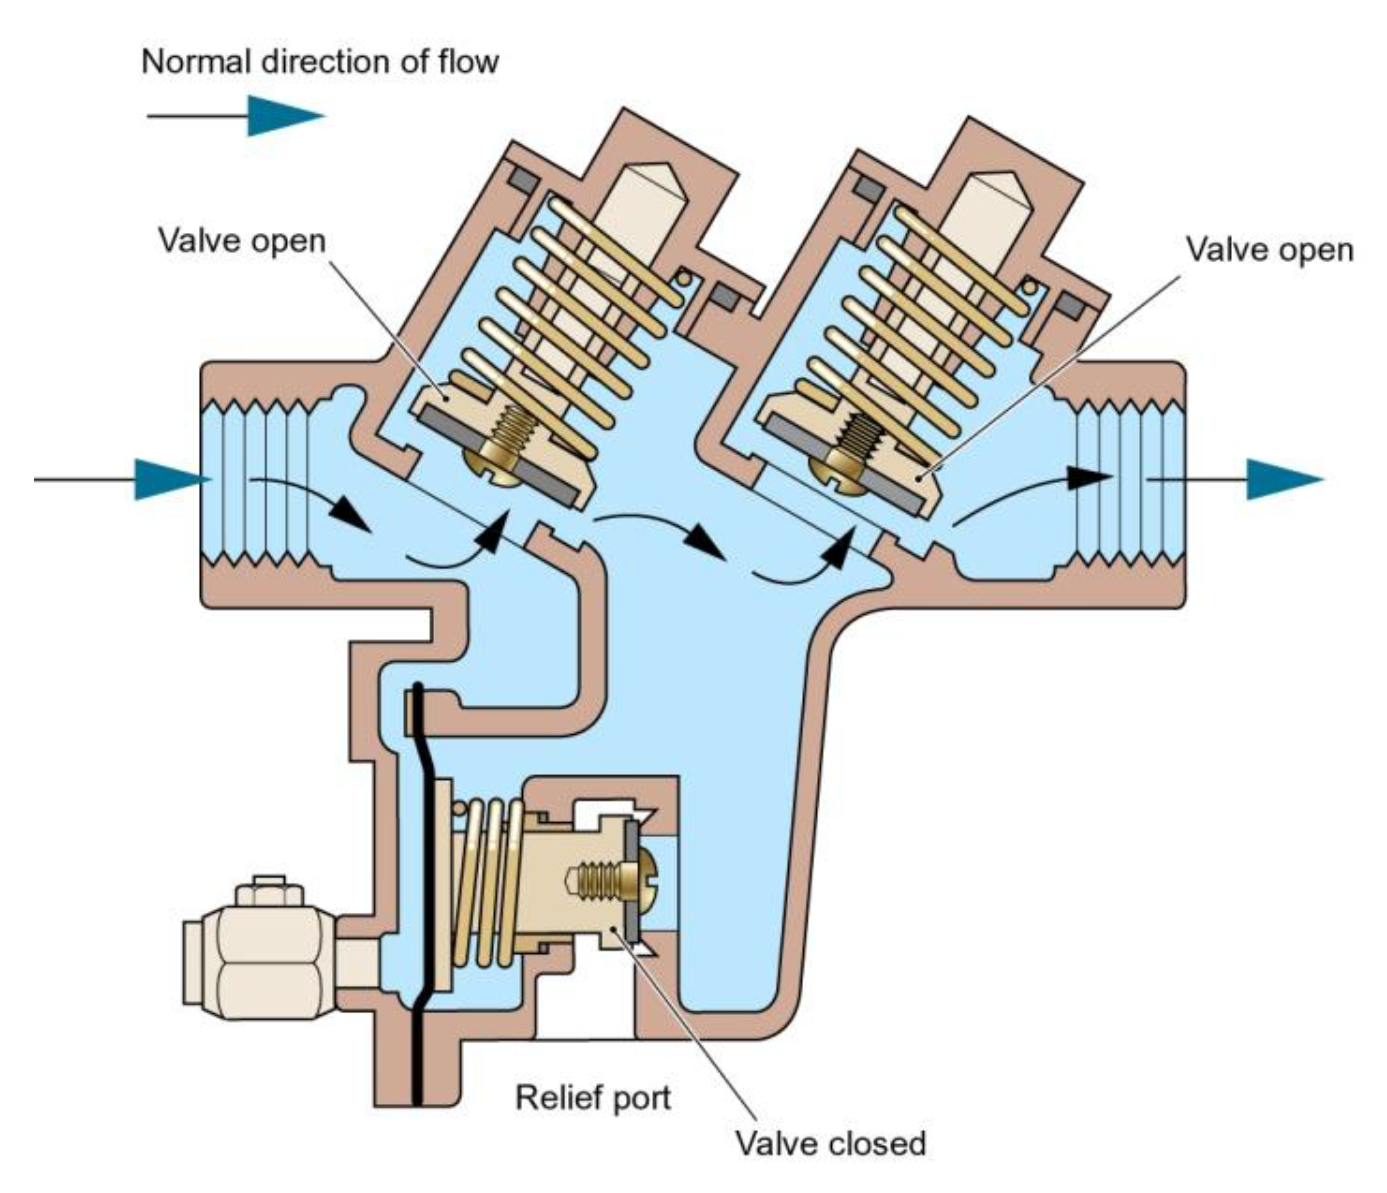 Backflow Prevention Device - BA Type in normal flow conditions